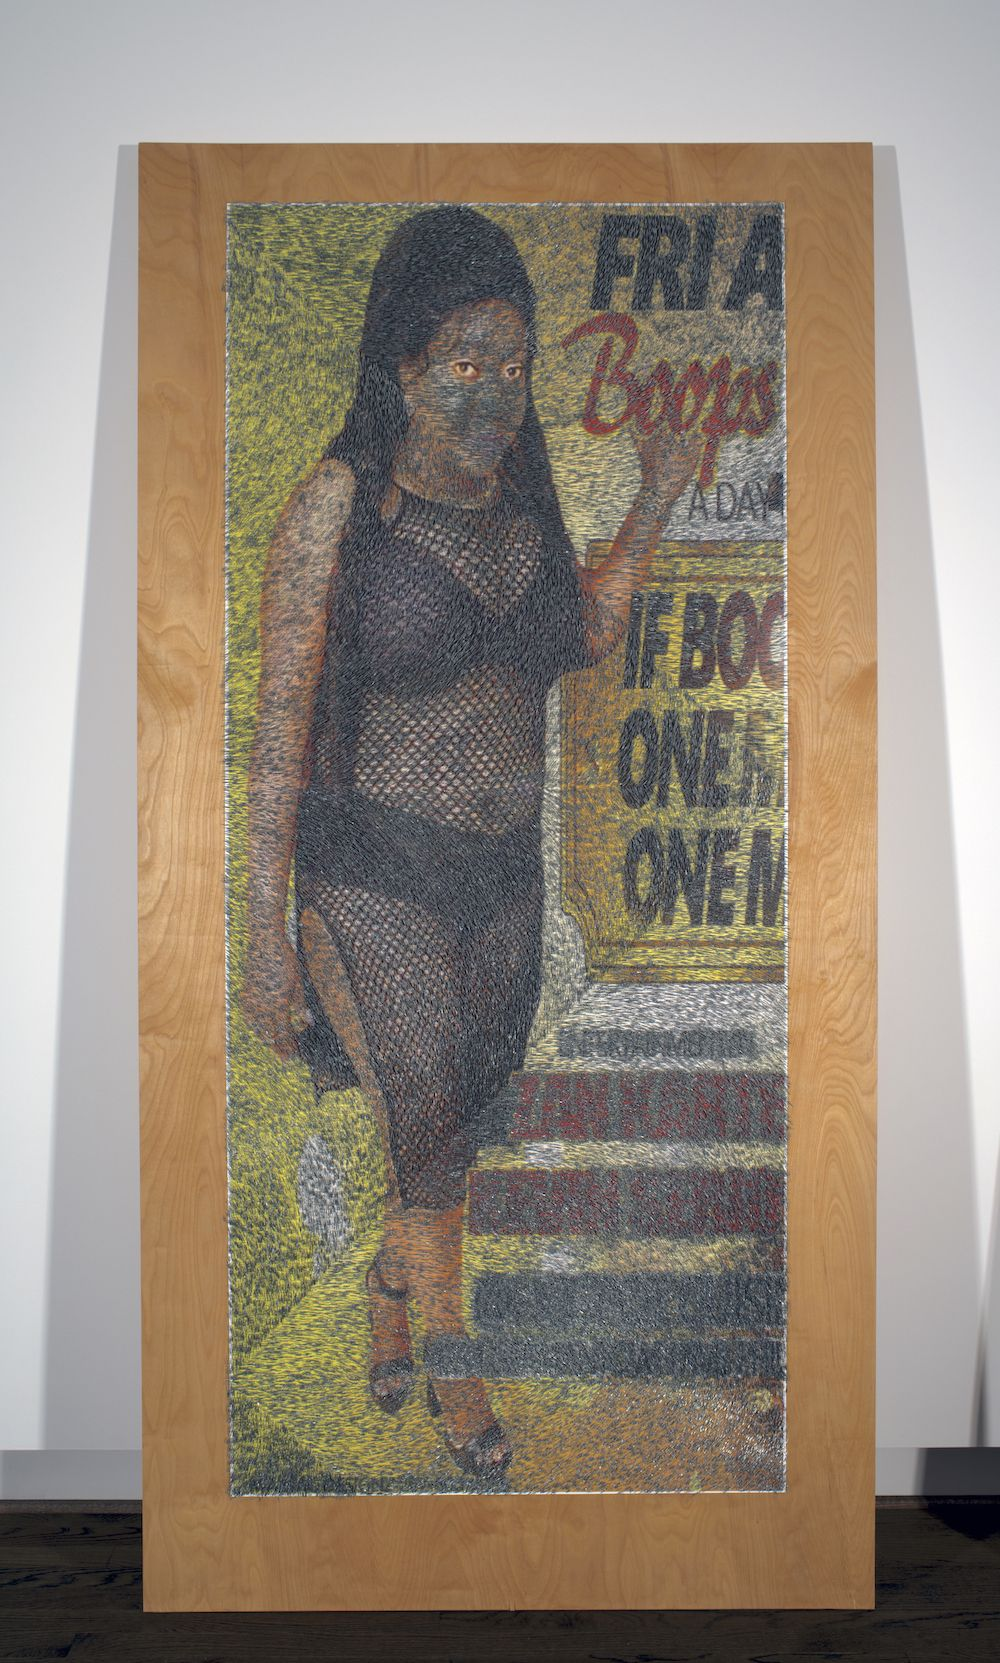 WILMER WILSON IV  A DAY staples and pigment print on wood 96 x 48 x 1.5 inches